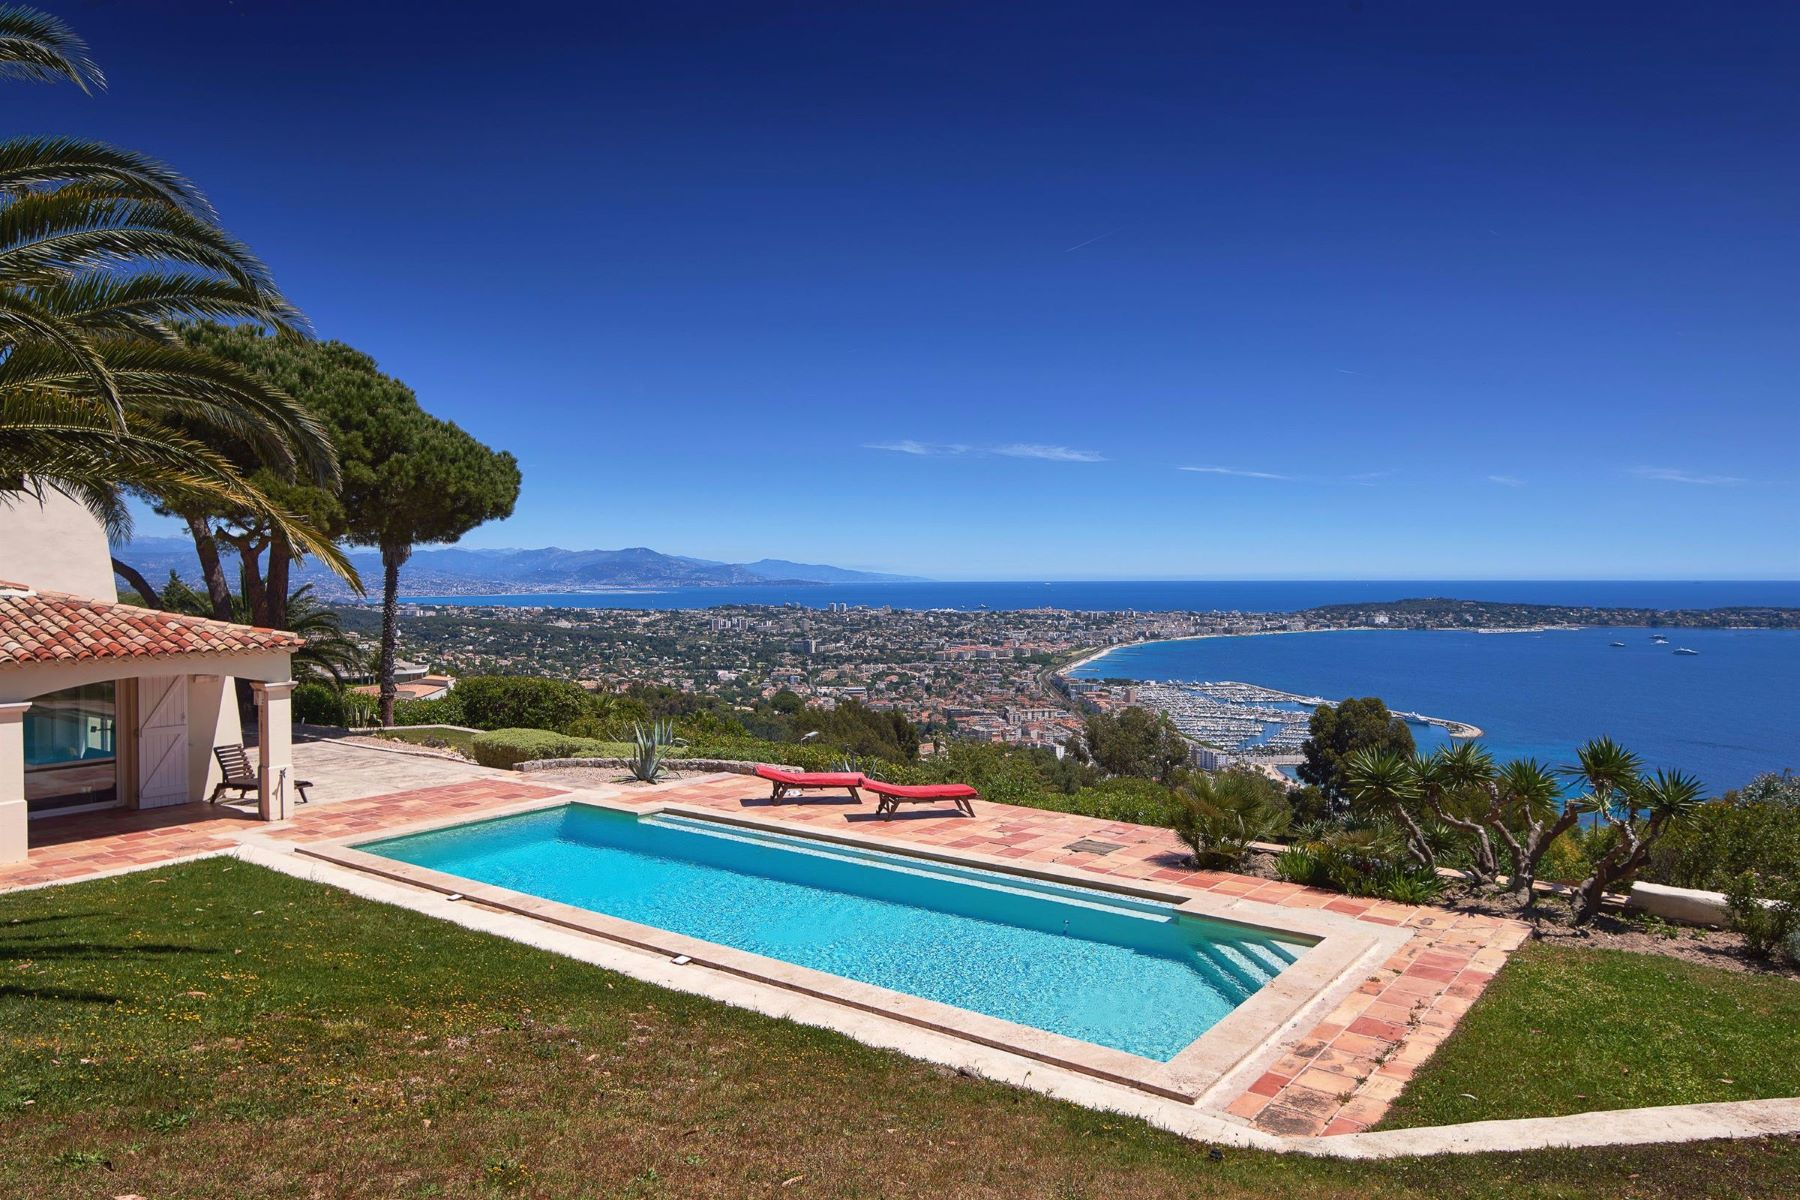 Single Family Home for Rent at Luxury rentals - villa with sea views - Super-Cannes Golfe Juan, Provence-Alpes-Cote D'Azur 06220 France